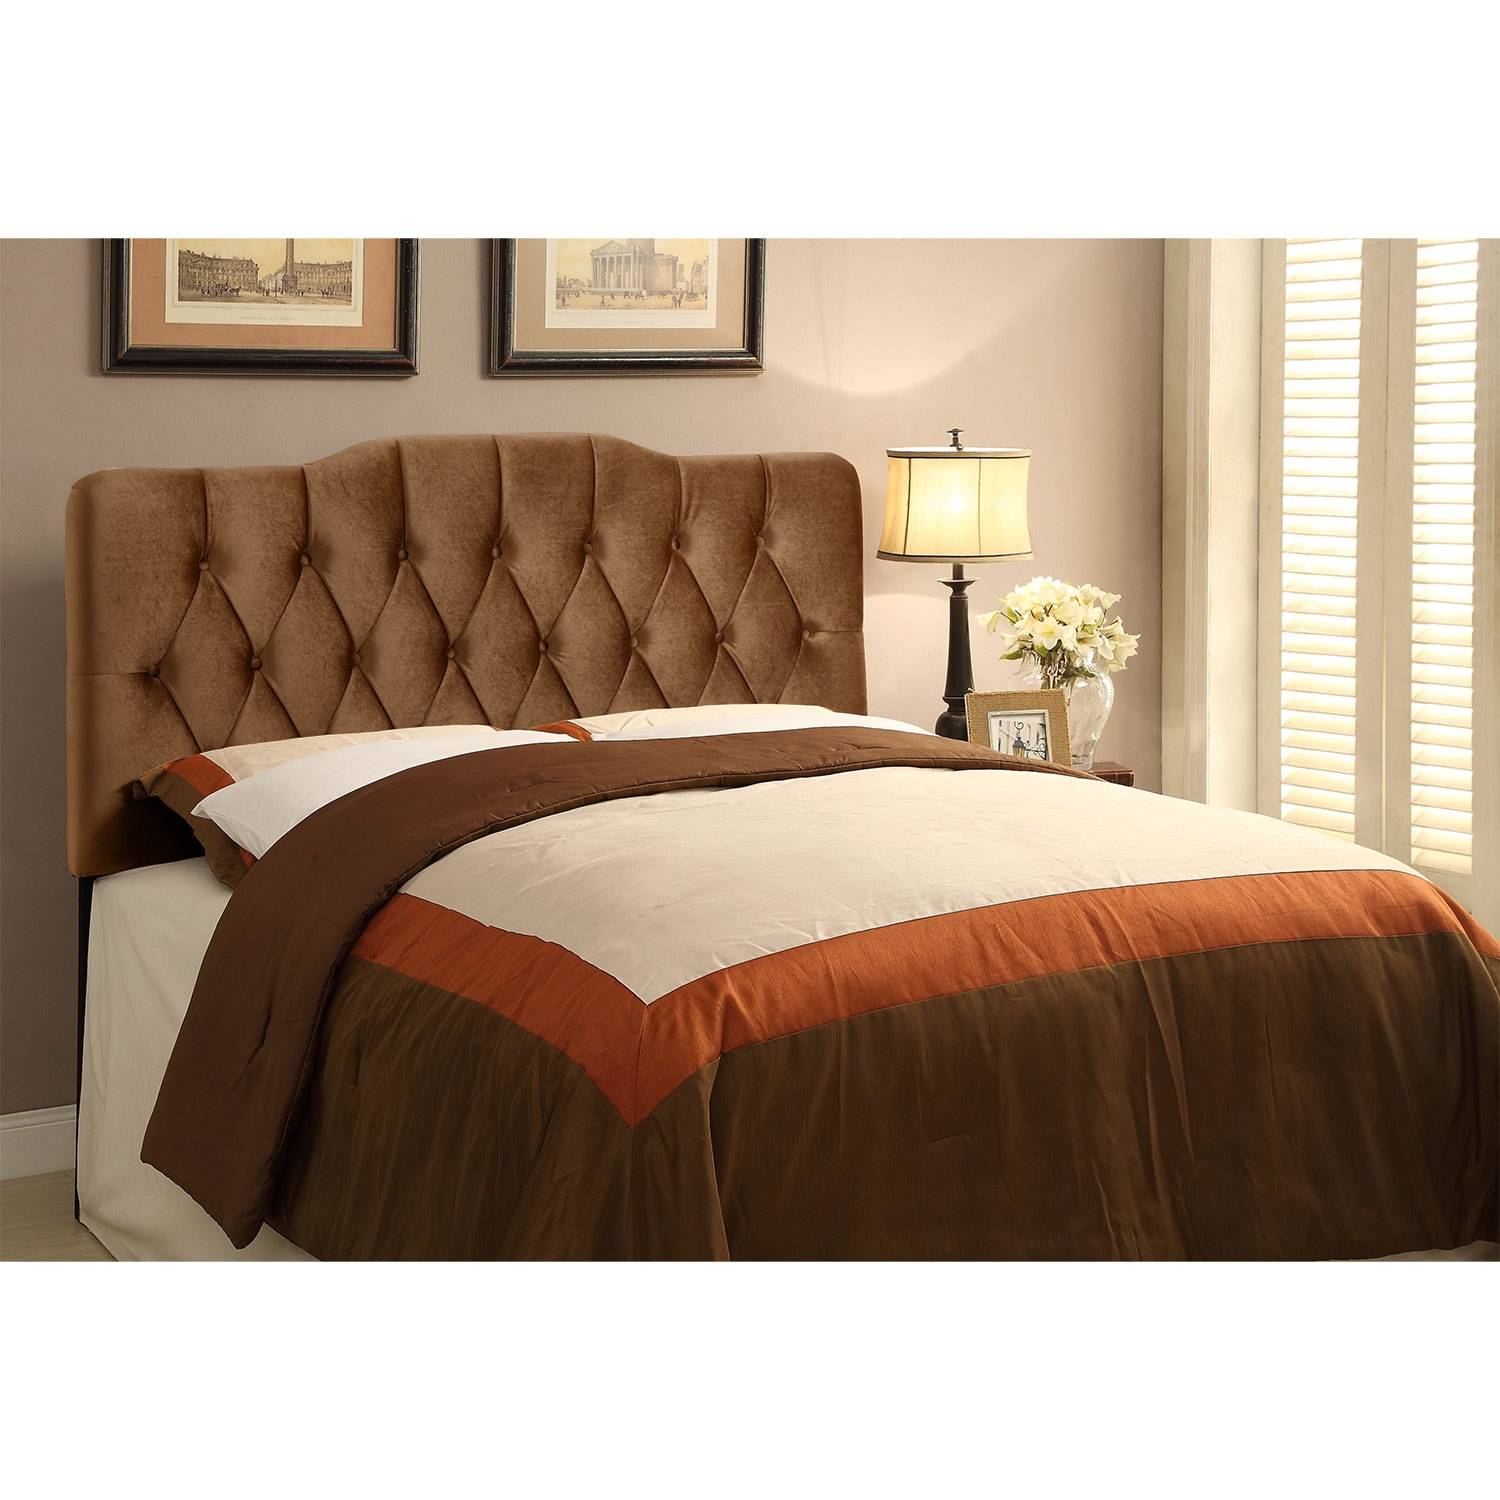 Bedroom Furniture - Quinn King Headboard - Bronze